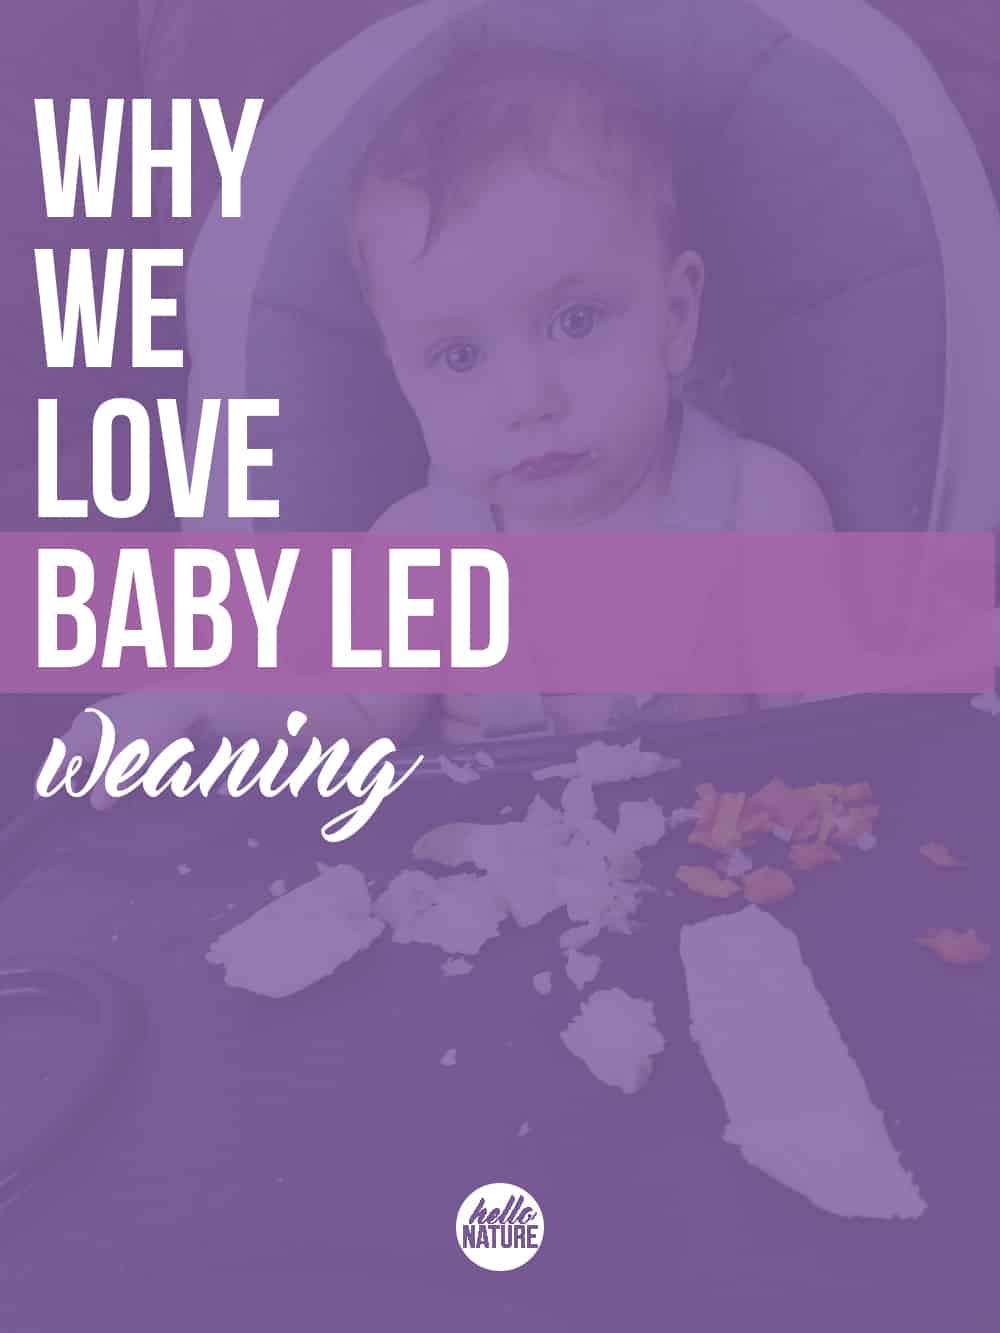 We knew we wanted to love baby led weaning, but we had no idea if we would. See why it's one of the best parenting decisions we've made!